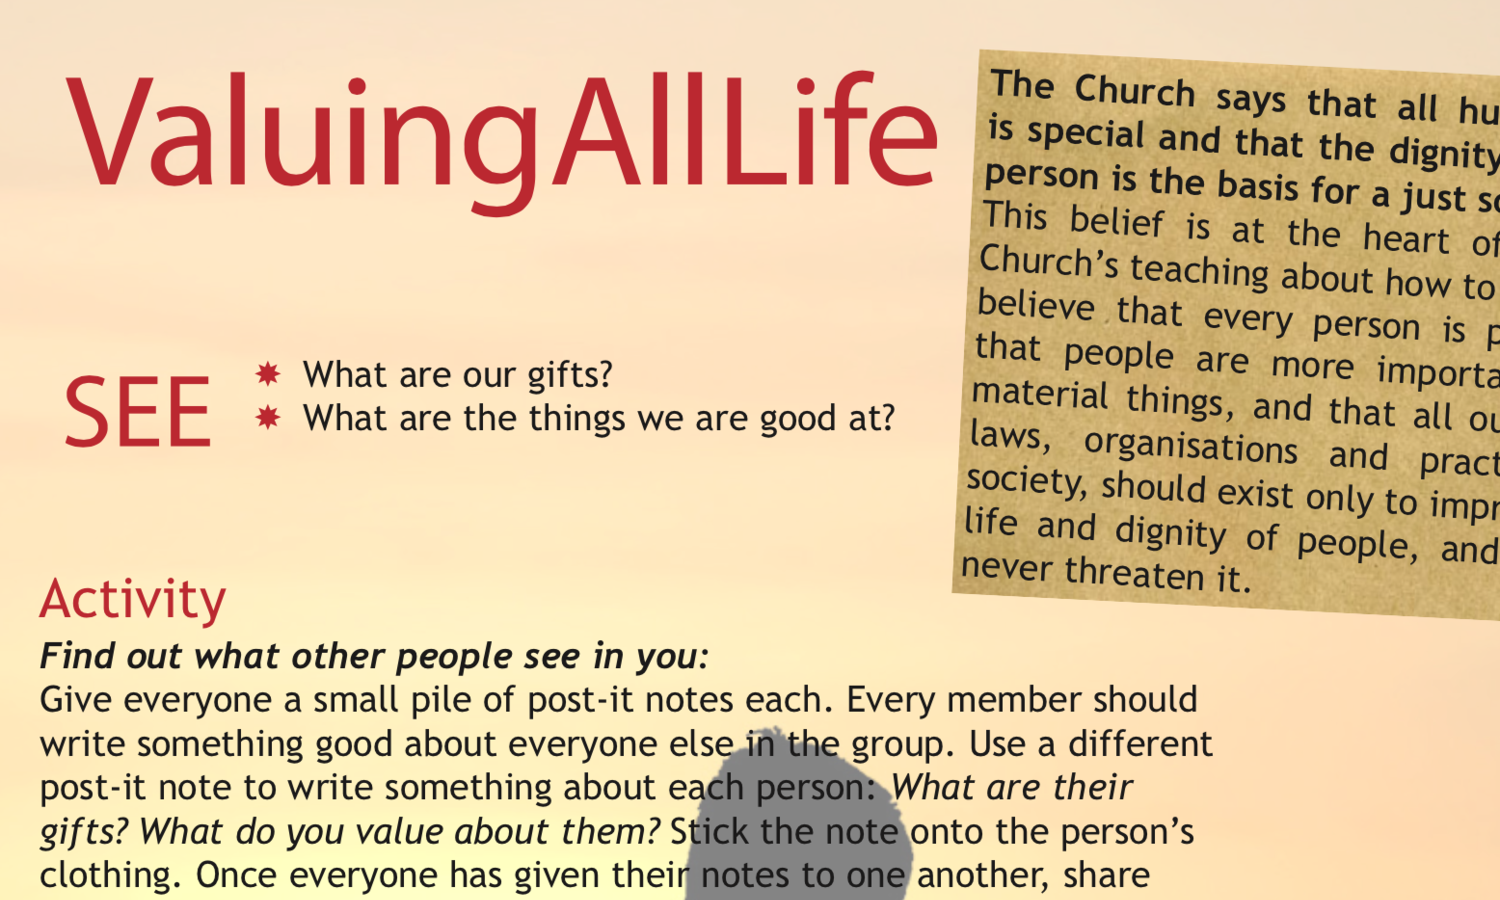 Part of the same series of resources for older teenagers, this focuses on the dignity of human life, another important theme of Catholic Social Teaching.